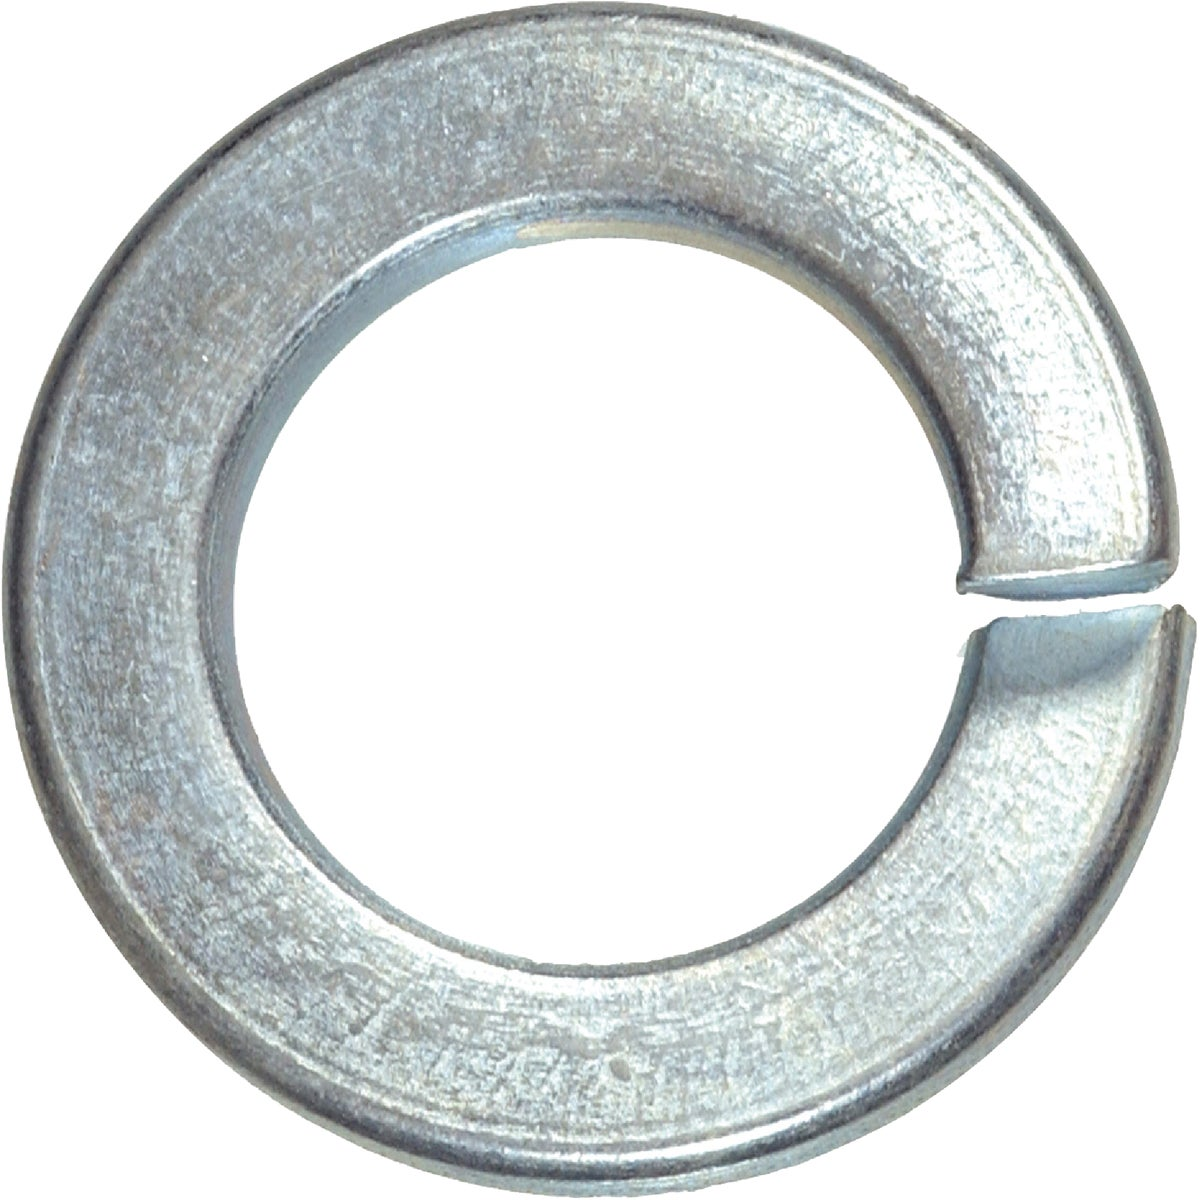 #10 STEEL LOCK WASHER - 6603 by Hillman Fastener